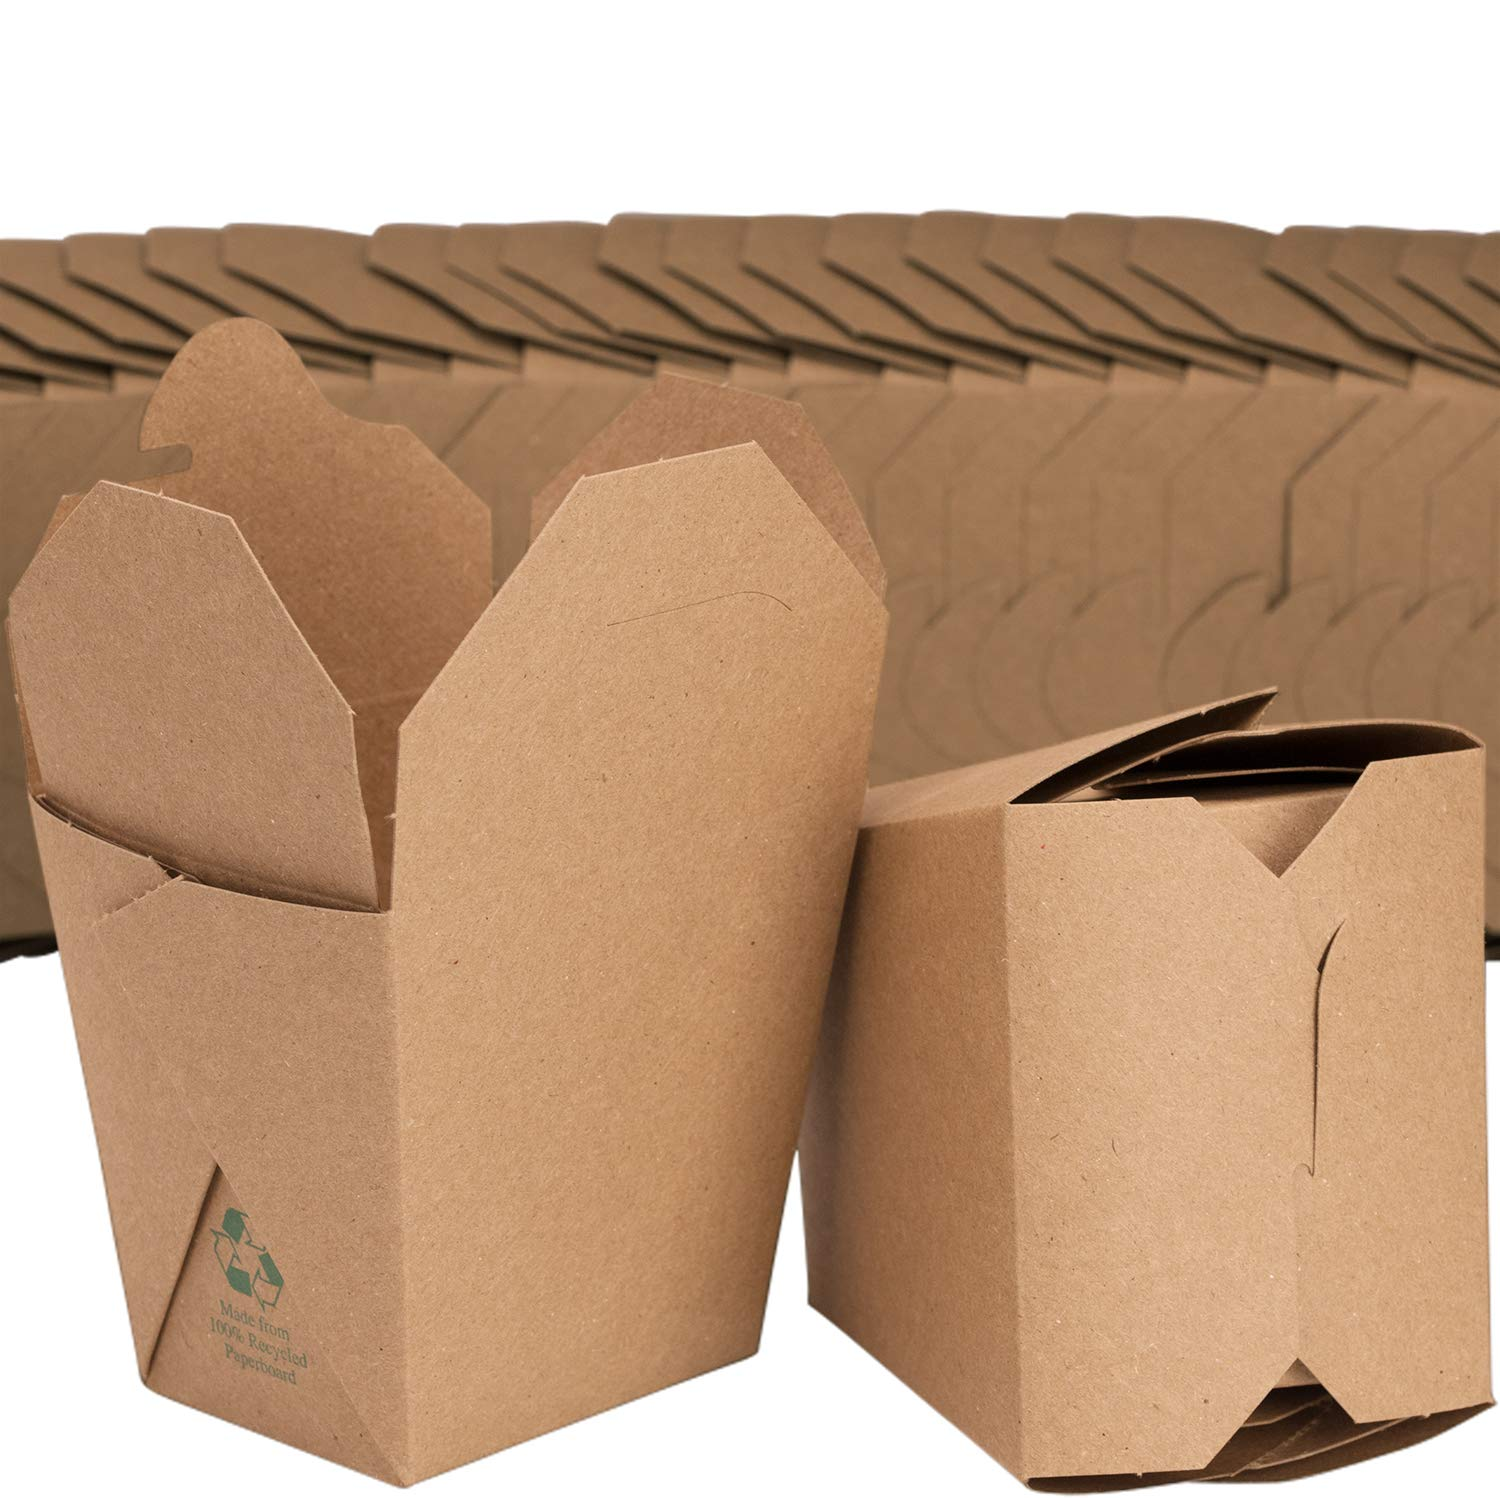 Microwavable Brown Chinese 16 oz Take Out Boxes. 50 Pack by Avant Grub. Stackable Pails Are Recyclable. Ideal Leak And Grease Resistant Pint Size To Go Container For Restaurants and Food Service.